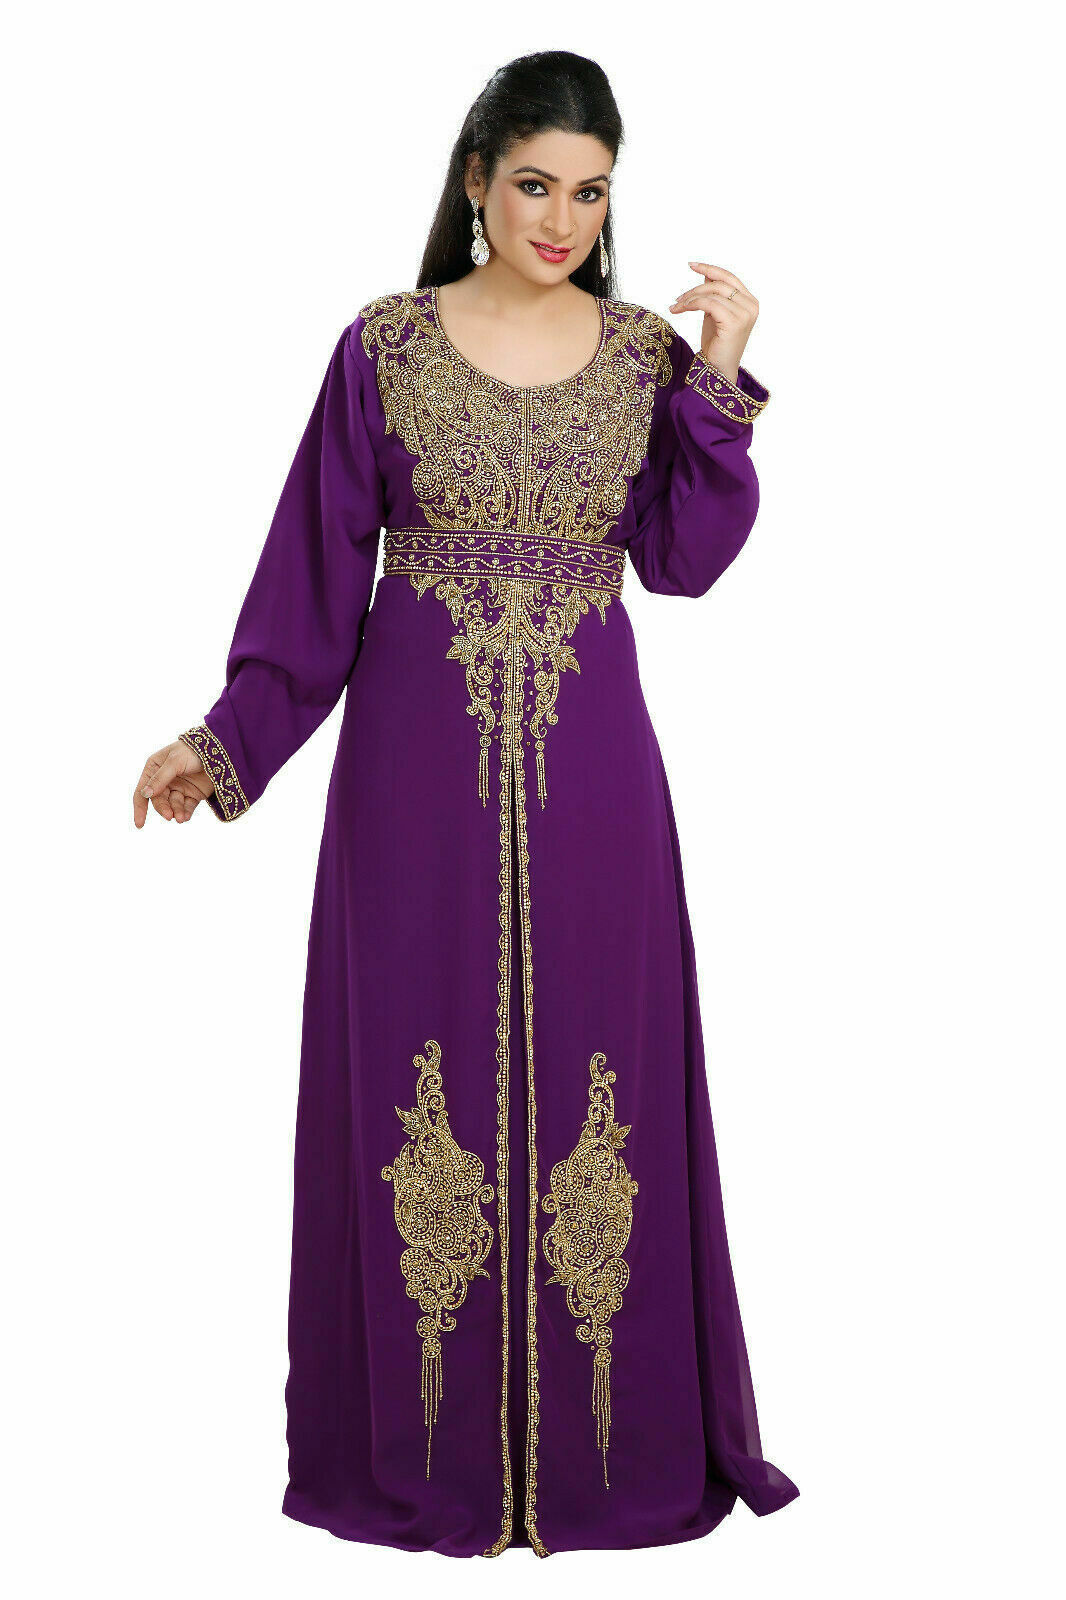 Primary image for New Evening Long Maxi Gown Dubai Plus Size Beaded Kaftan African Abaya for Women